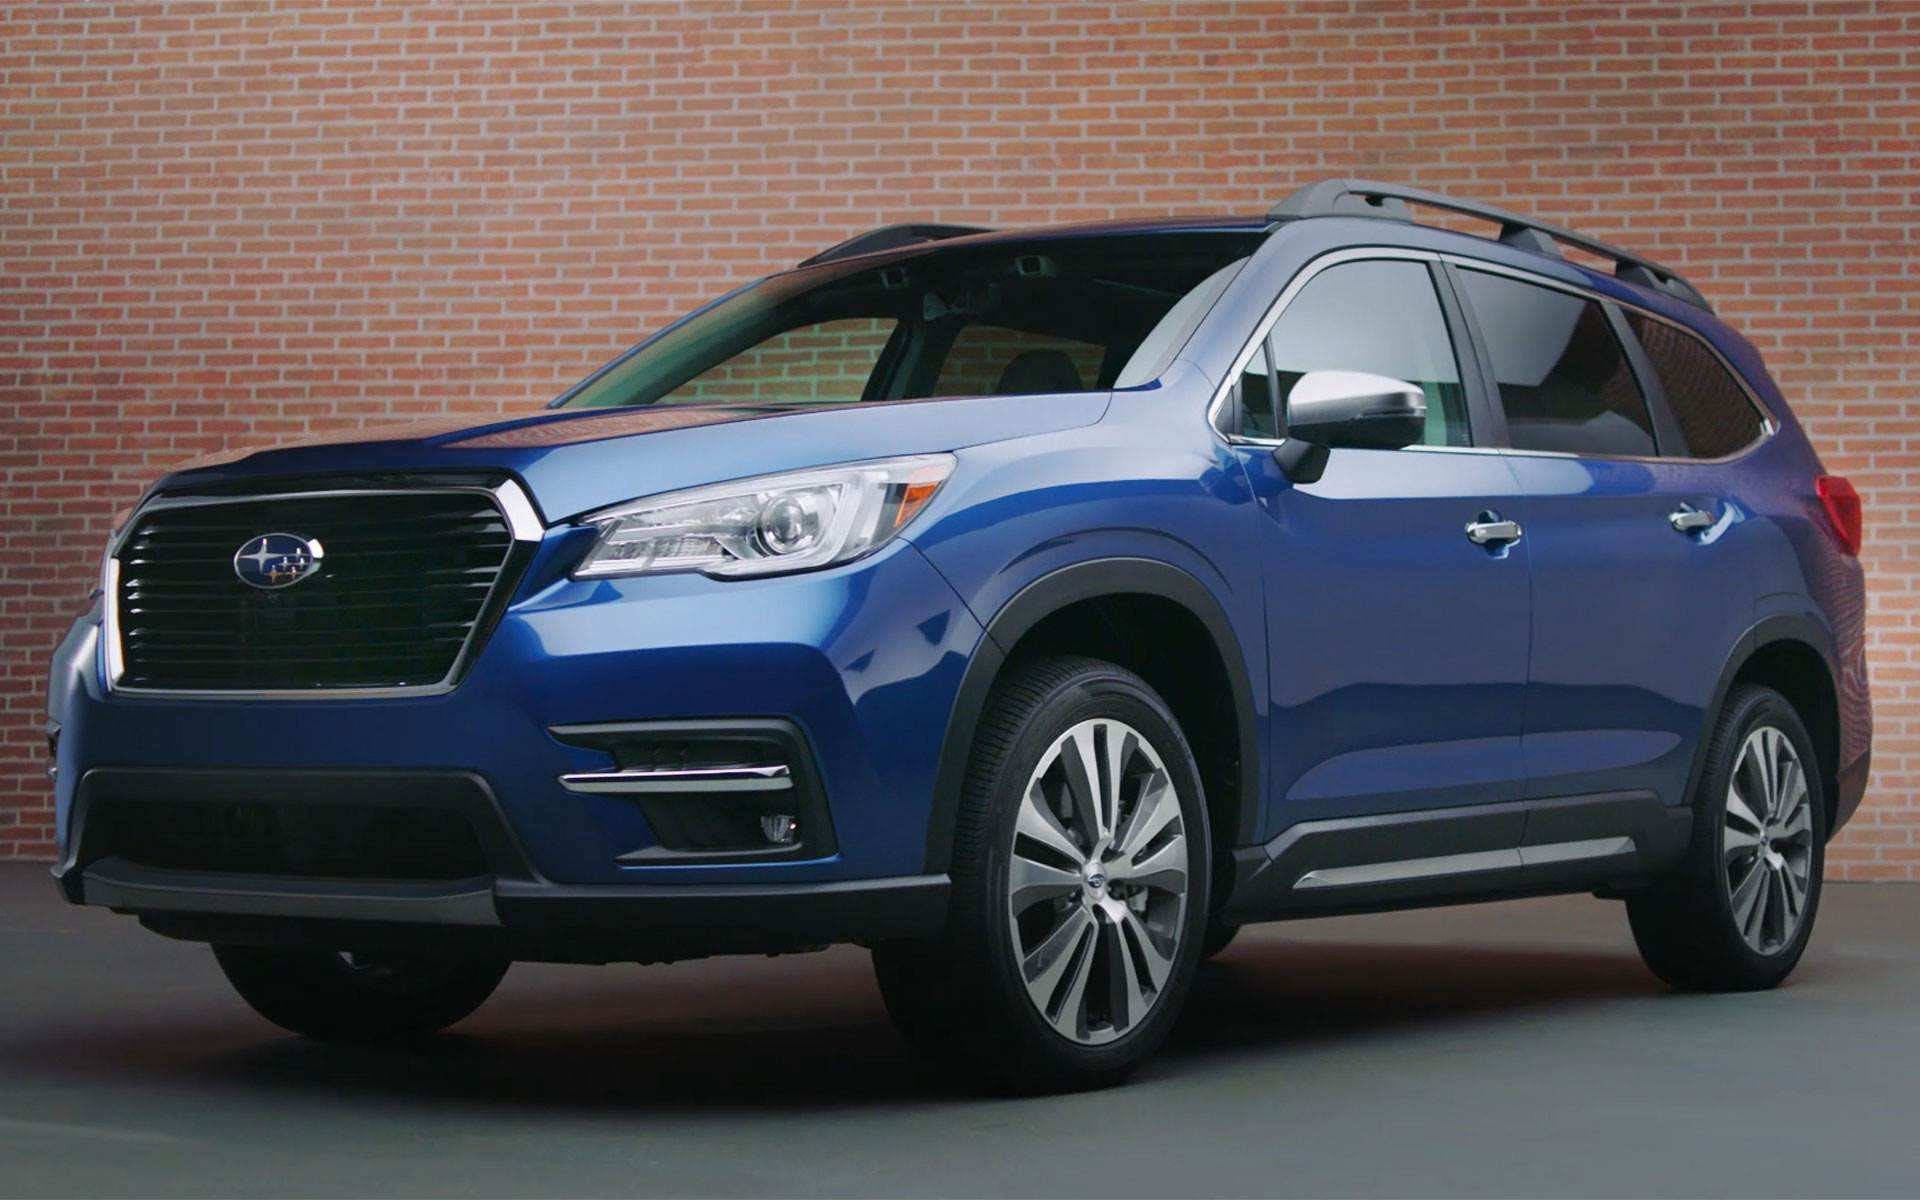 32 Best Review 2019 Subaru Ascent Kbb New Review with 2019 Subaru Ascent Kbb